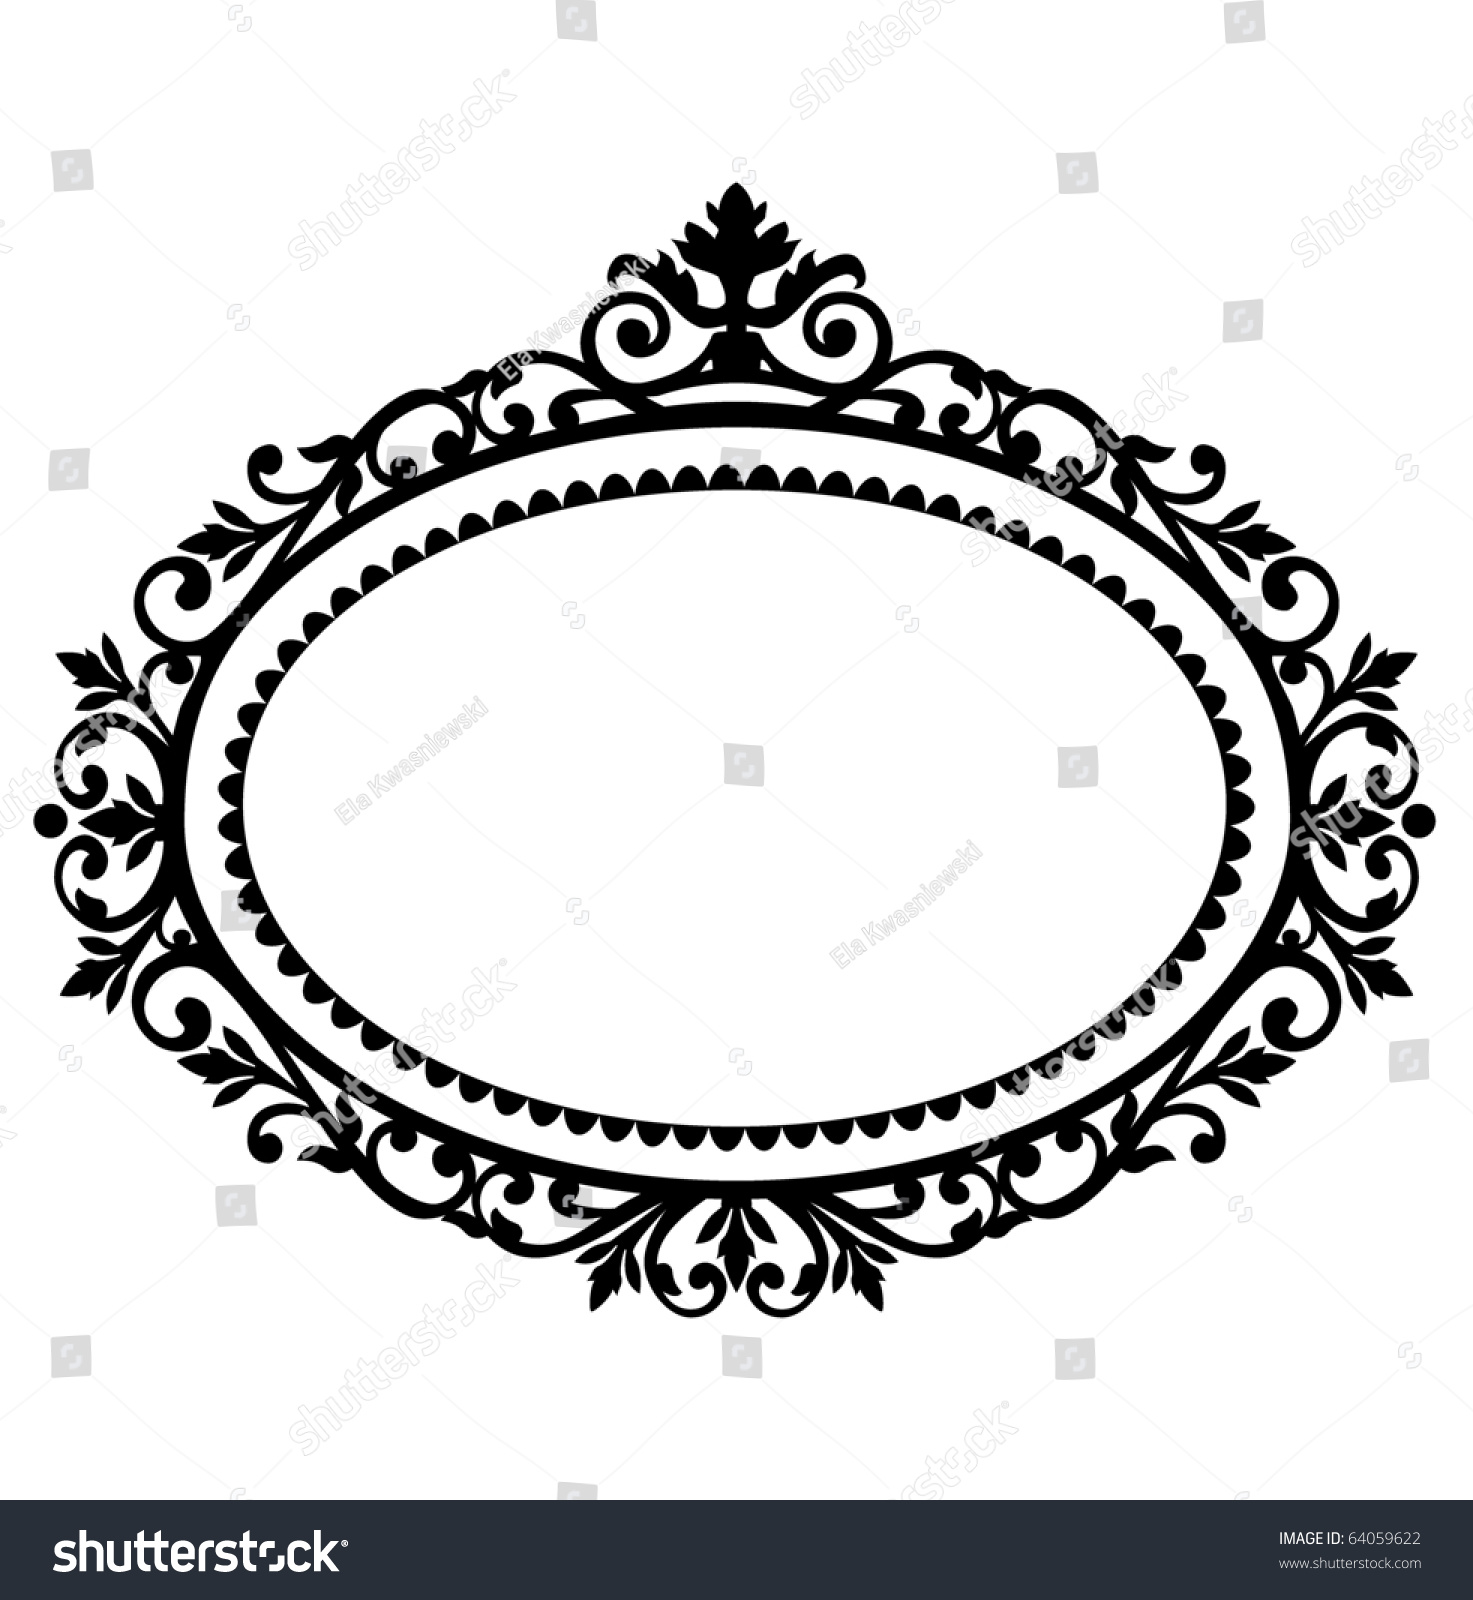 decorative frame - Decorative Frames